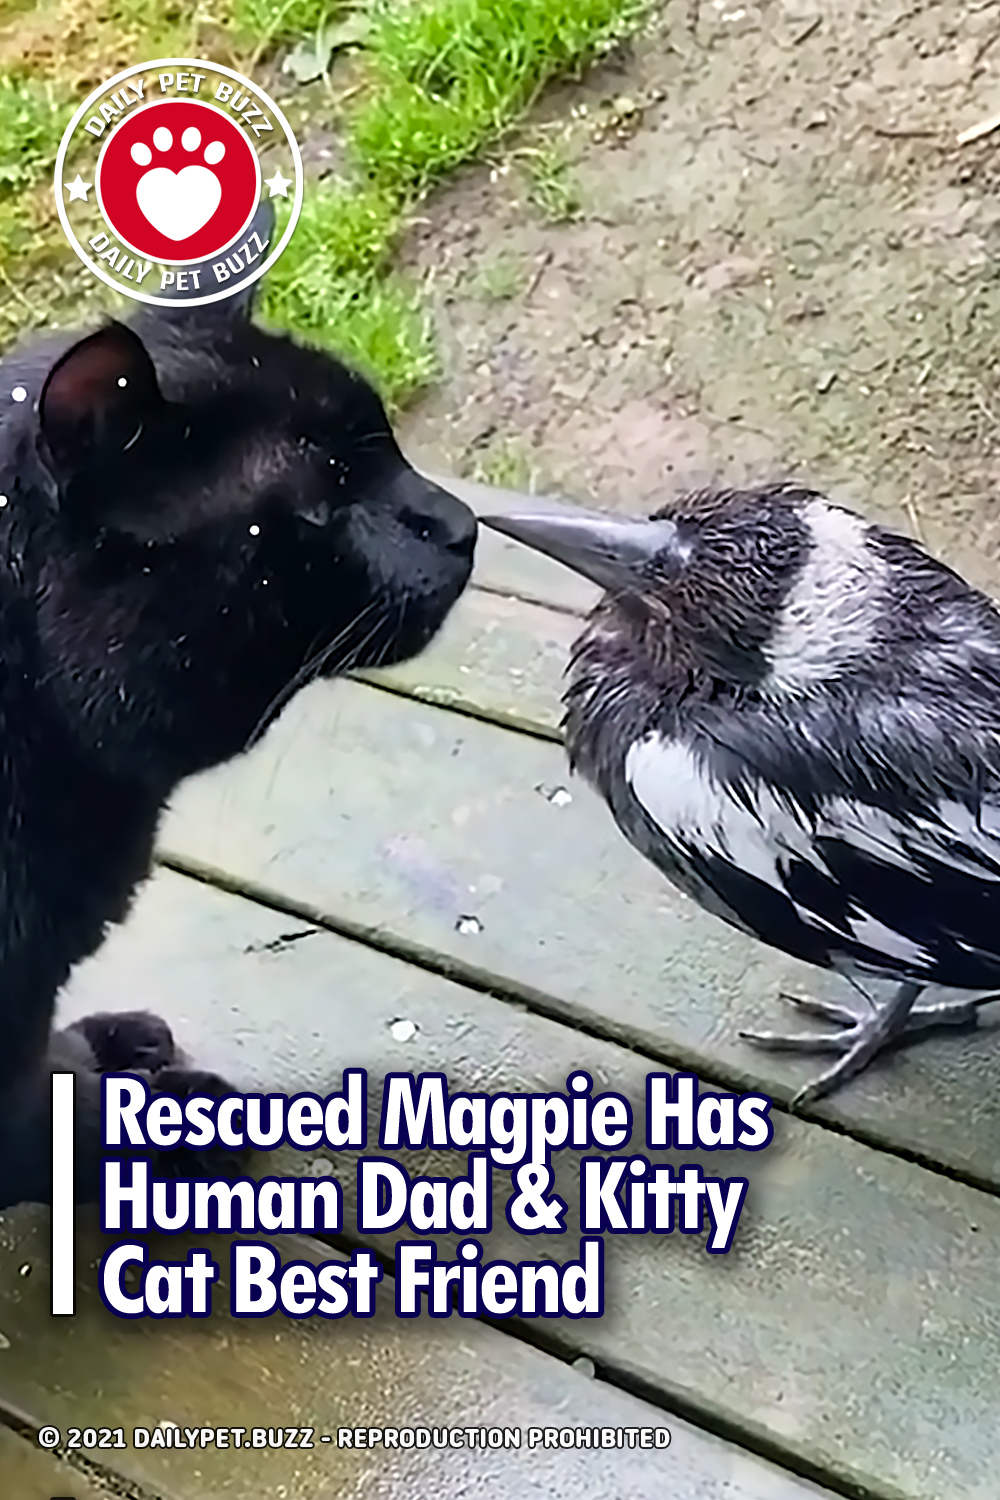 Rescued Magpie Has Human Dad & Kitty Cat Best Friend